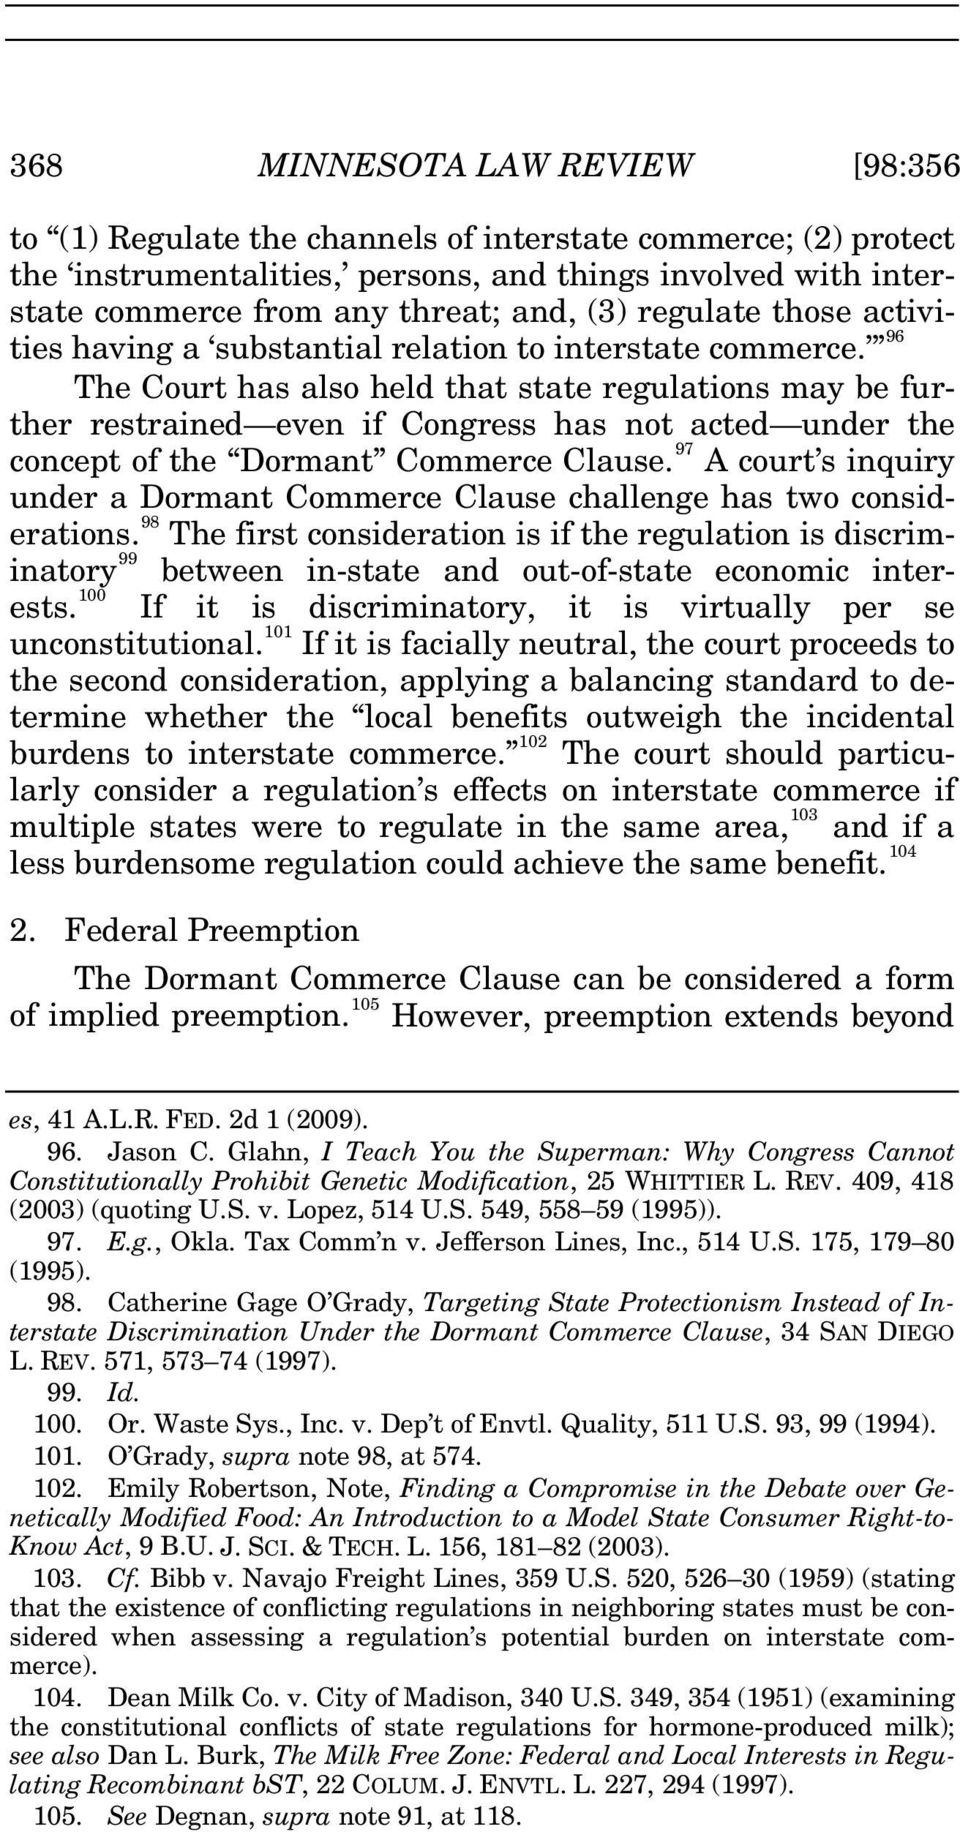 96 The Court has also held that state regulations may be further restrained even if Congress has not acted under the concept of the Dormant Commerce Clause.